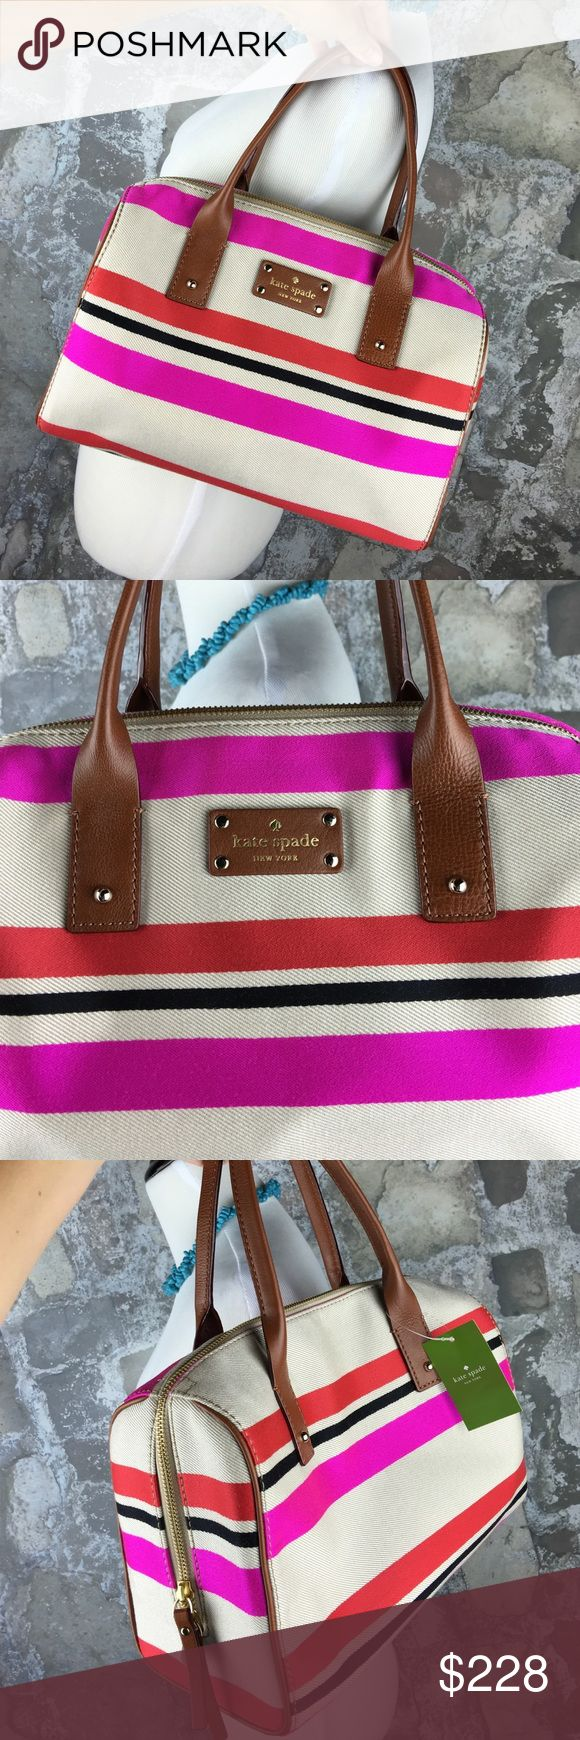 FINAL PRICE ❤️kate spade pink stripe purse Brand new with $328 tags! Authentic. Beautiful pink and red and black striped purse. Gorgeous brown leather detailing. A perfect everyday purse that you'll never want to let go! kate spade Bags